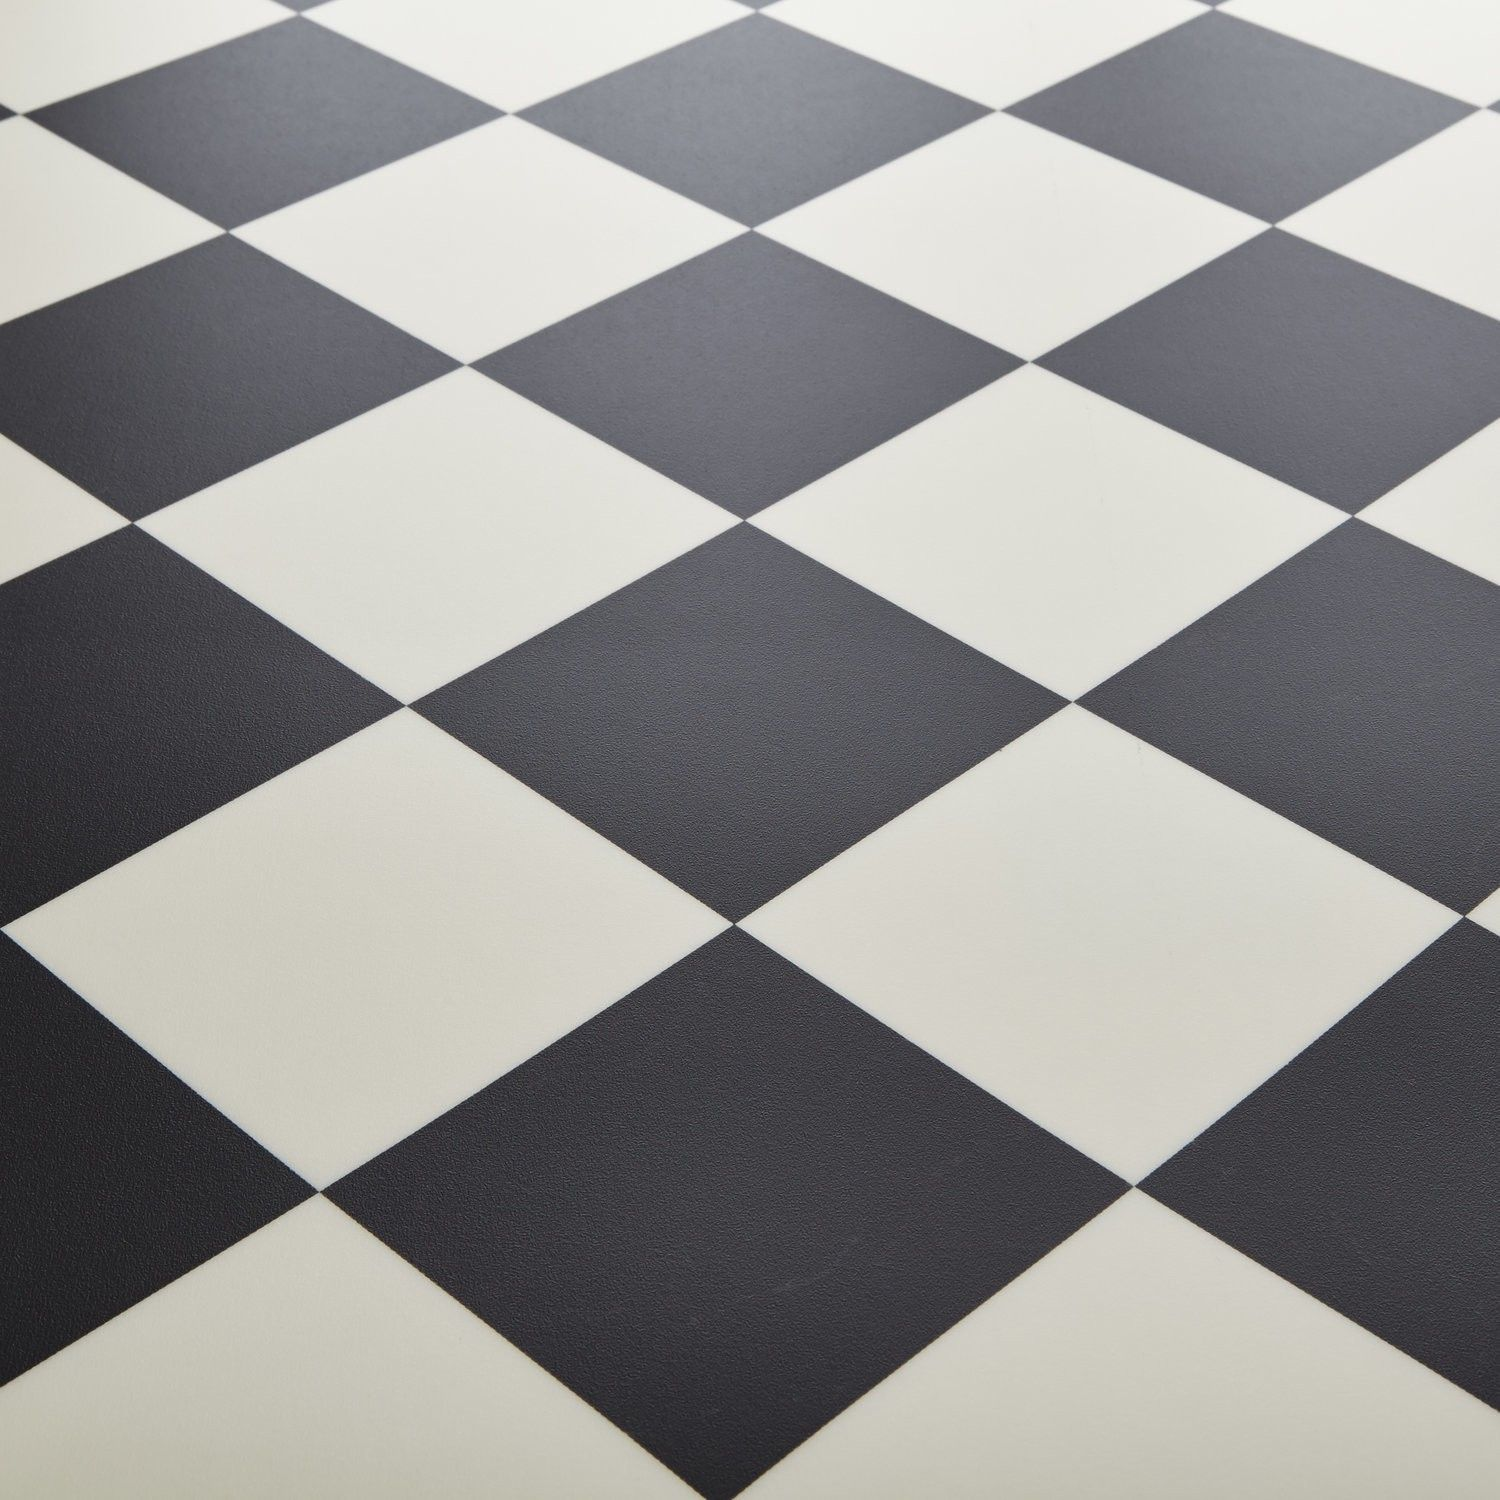 Rhino Champion Pisa Black White Chequered Tile Vinyl Flooring The Pattern I Want On